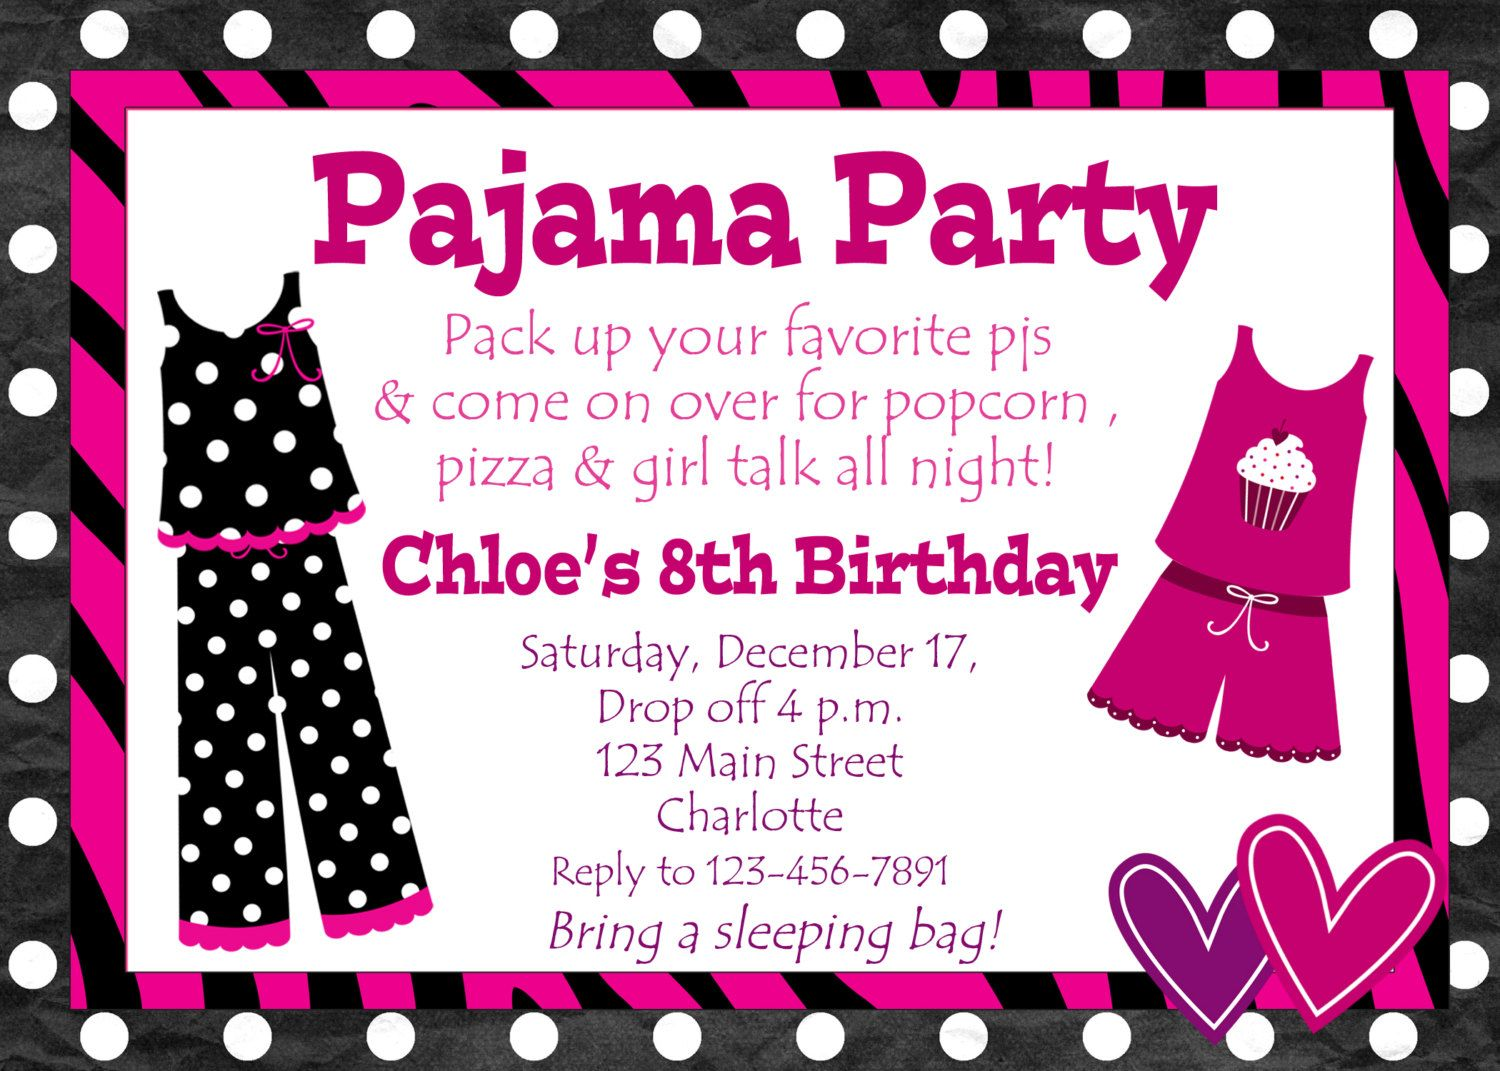 Pajama party birthday invitation | Party Themes and Things ...